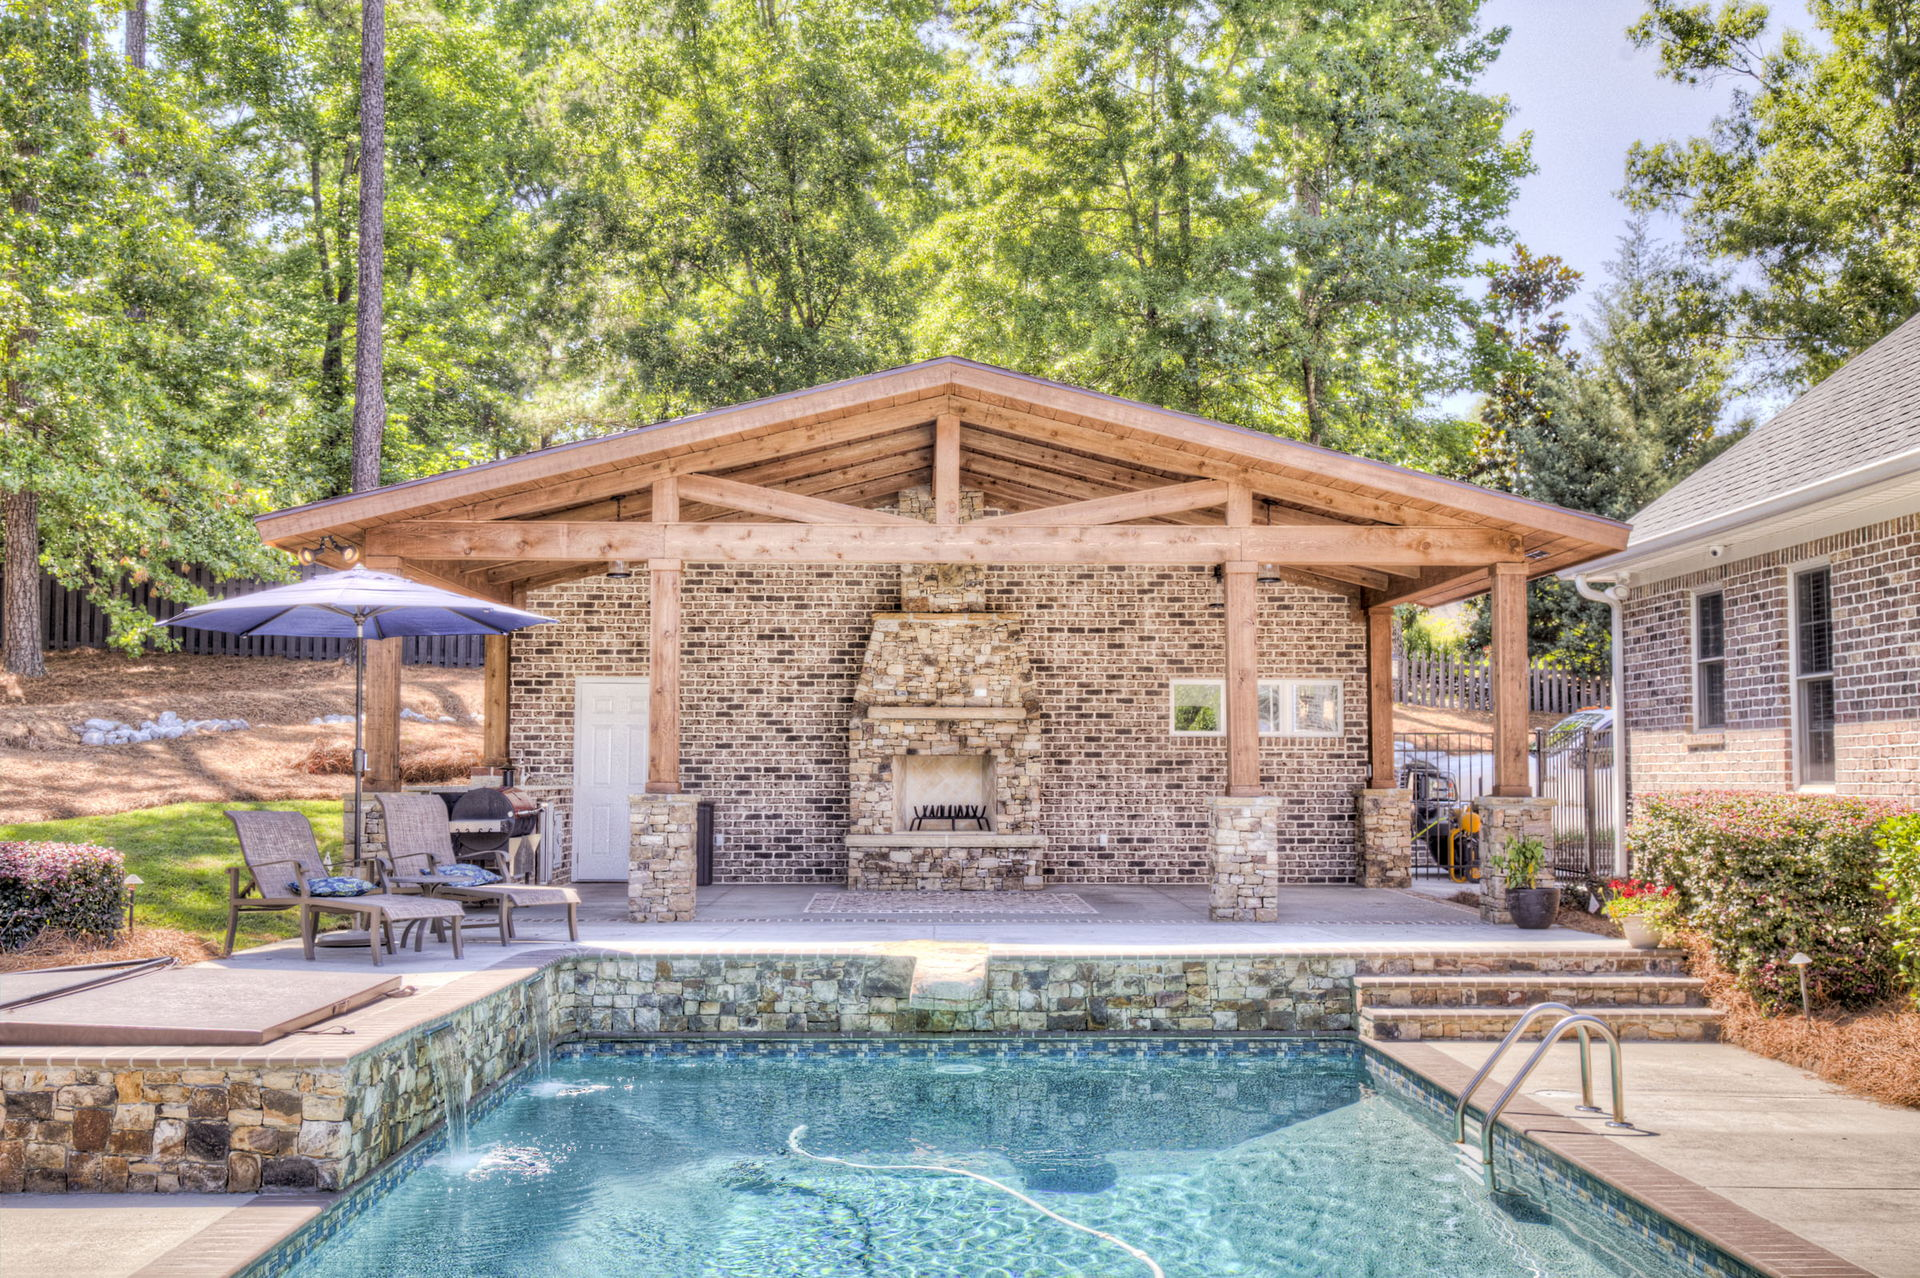 Poolscape and outdoor fireplace design in Augusta, GA